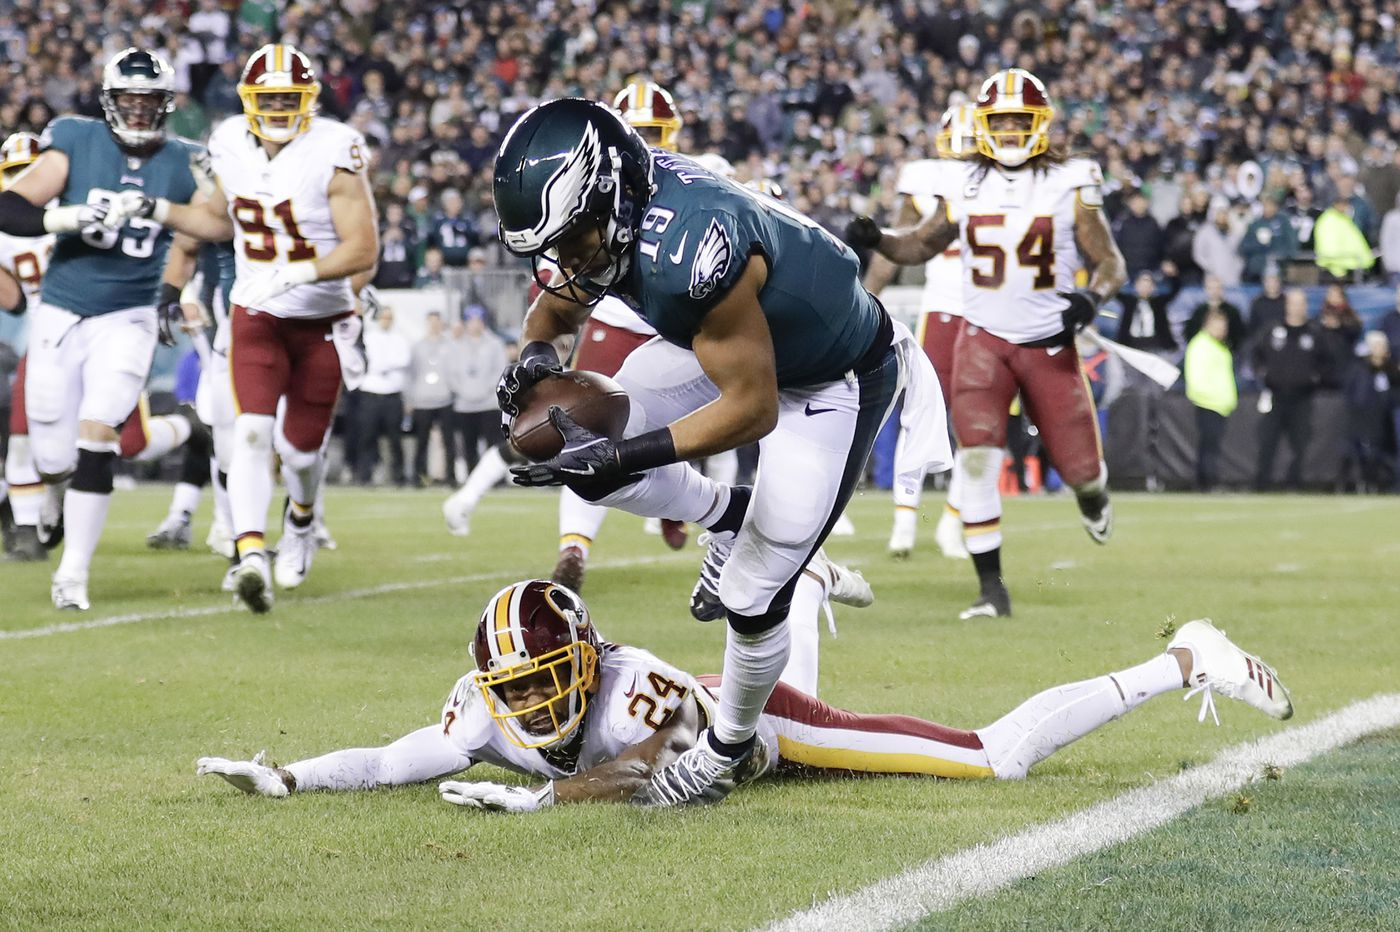 Eagles 28, Redskins 13: Carson Wentz stars as Birds show signs of life in big NFC East win